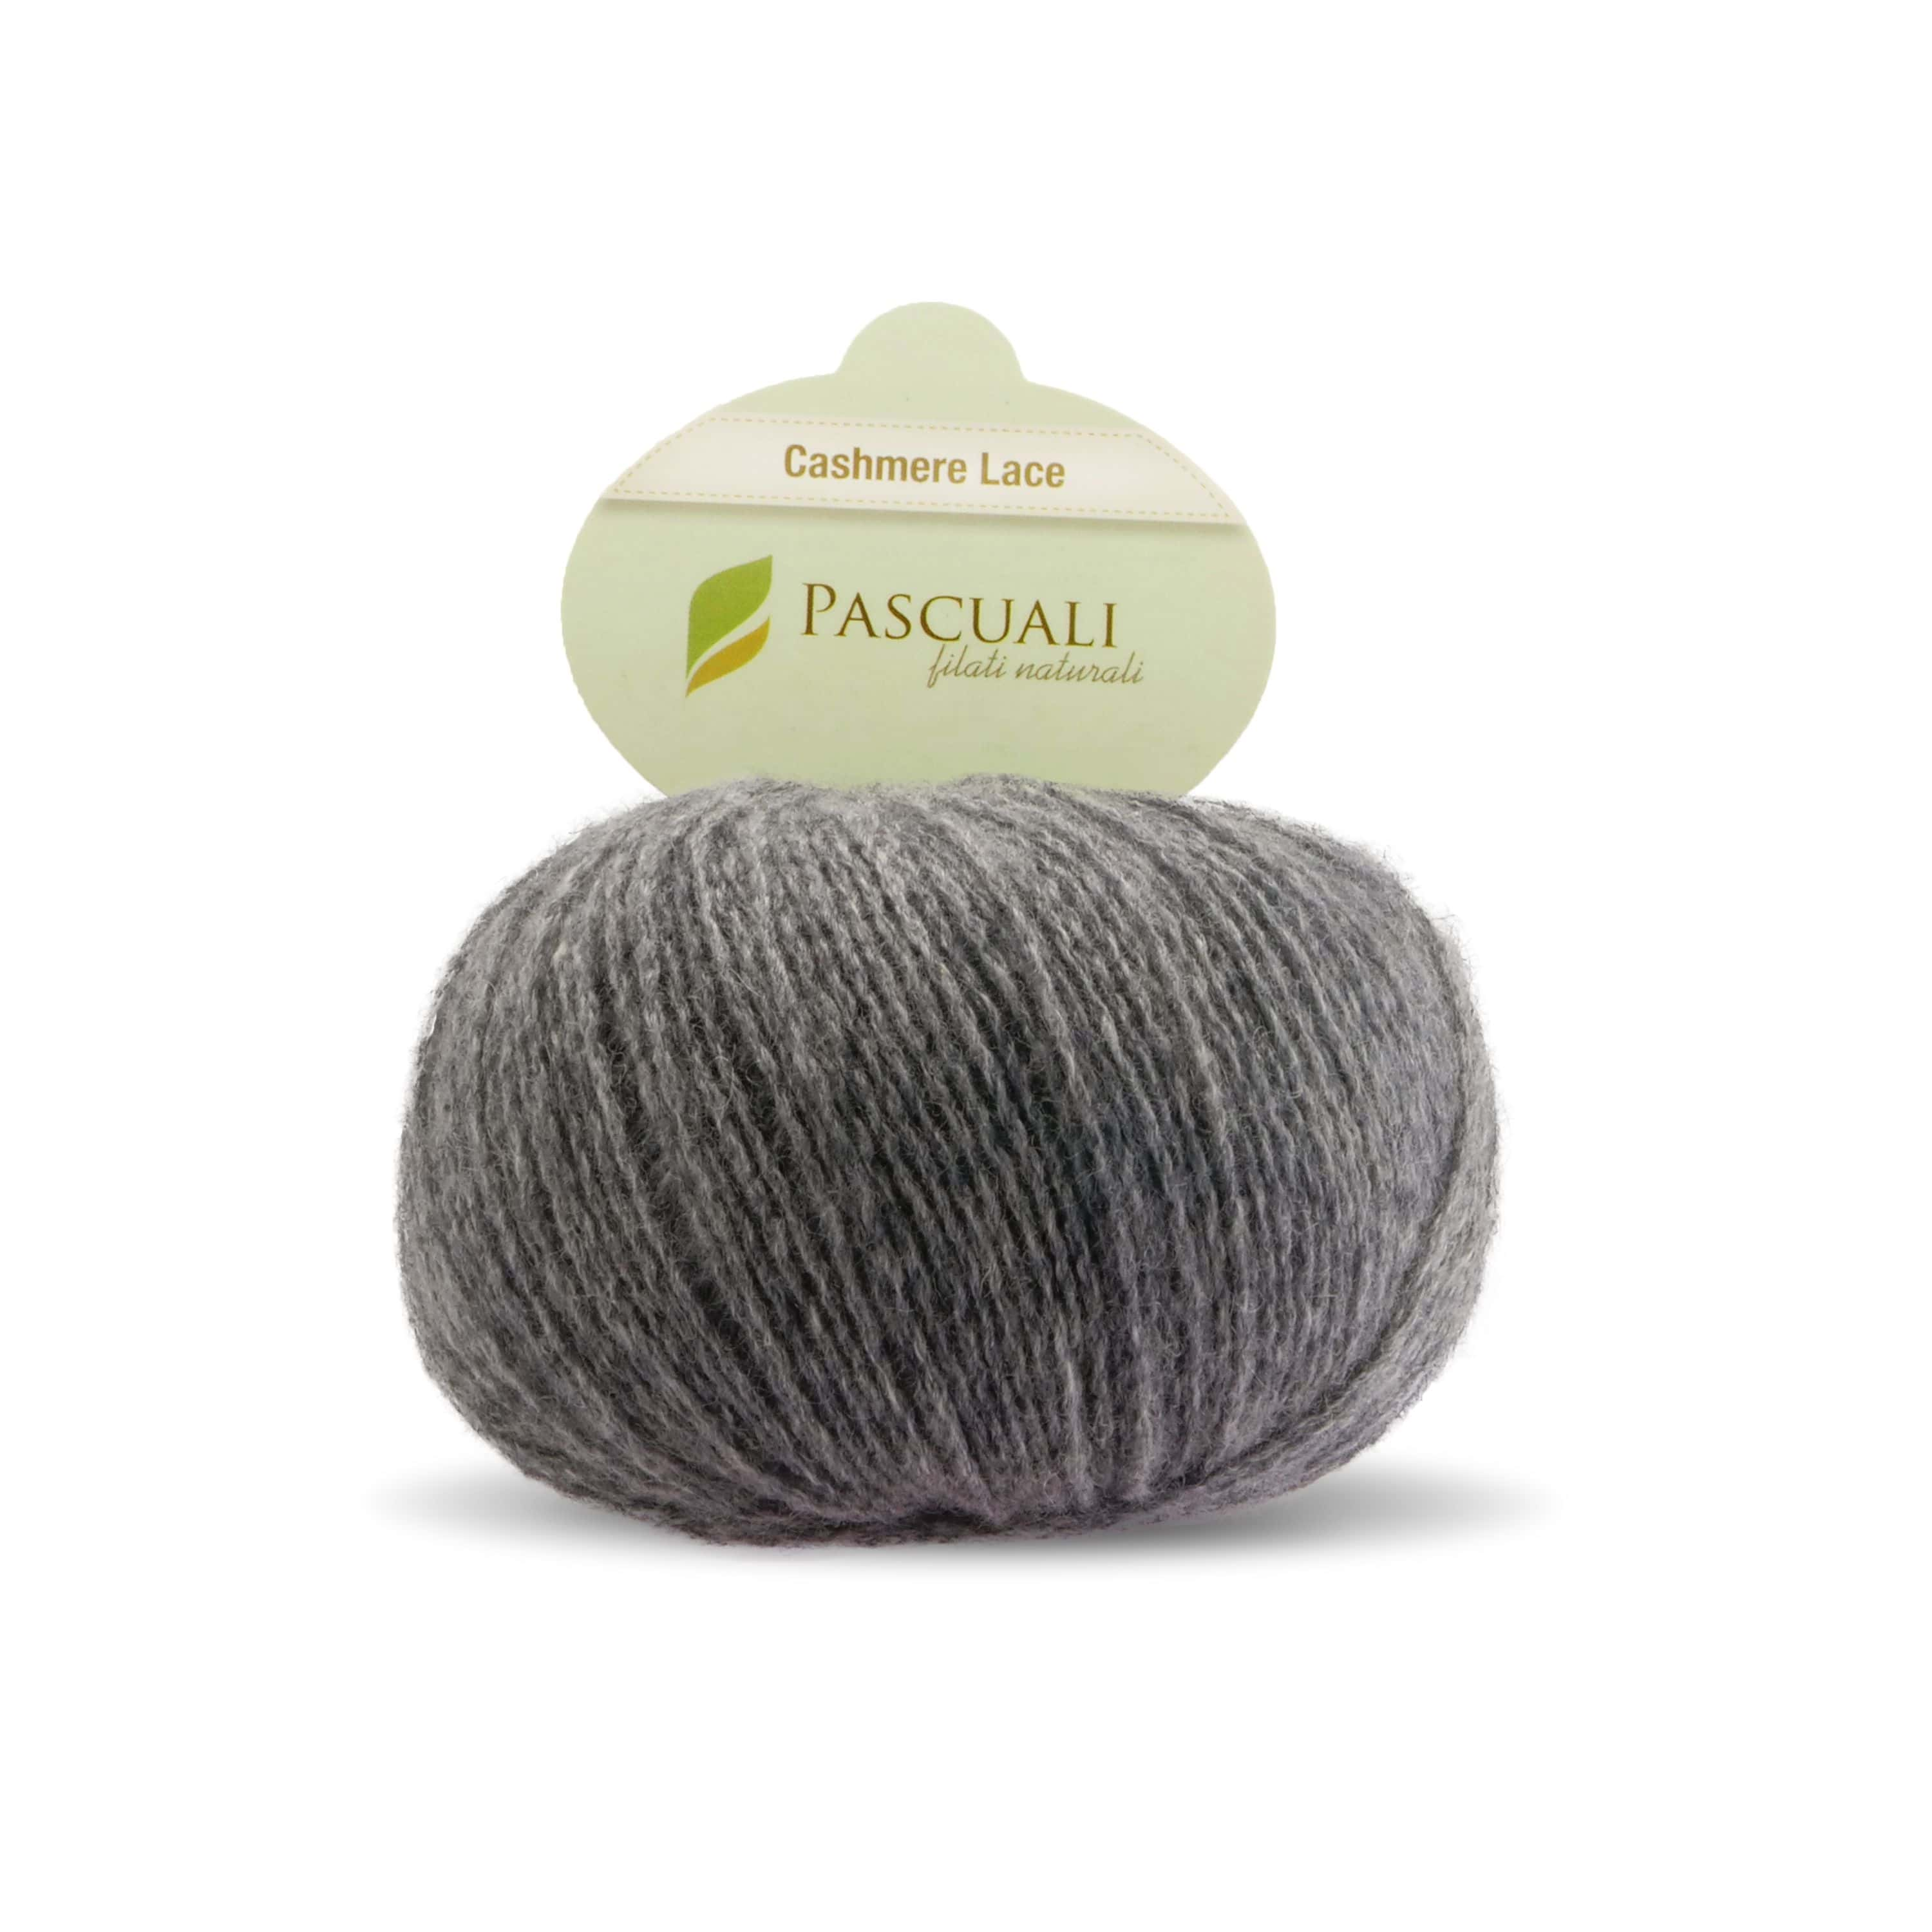 Pascuali Cashmere Lace Middle Gray 519